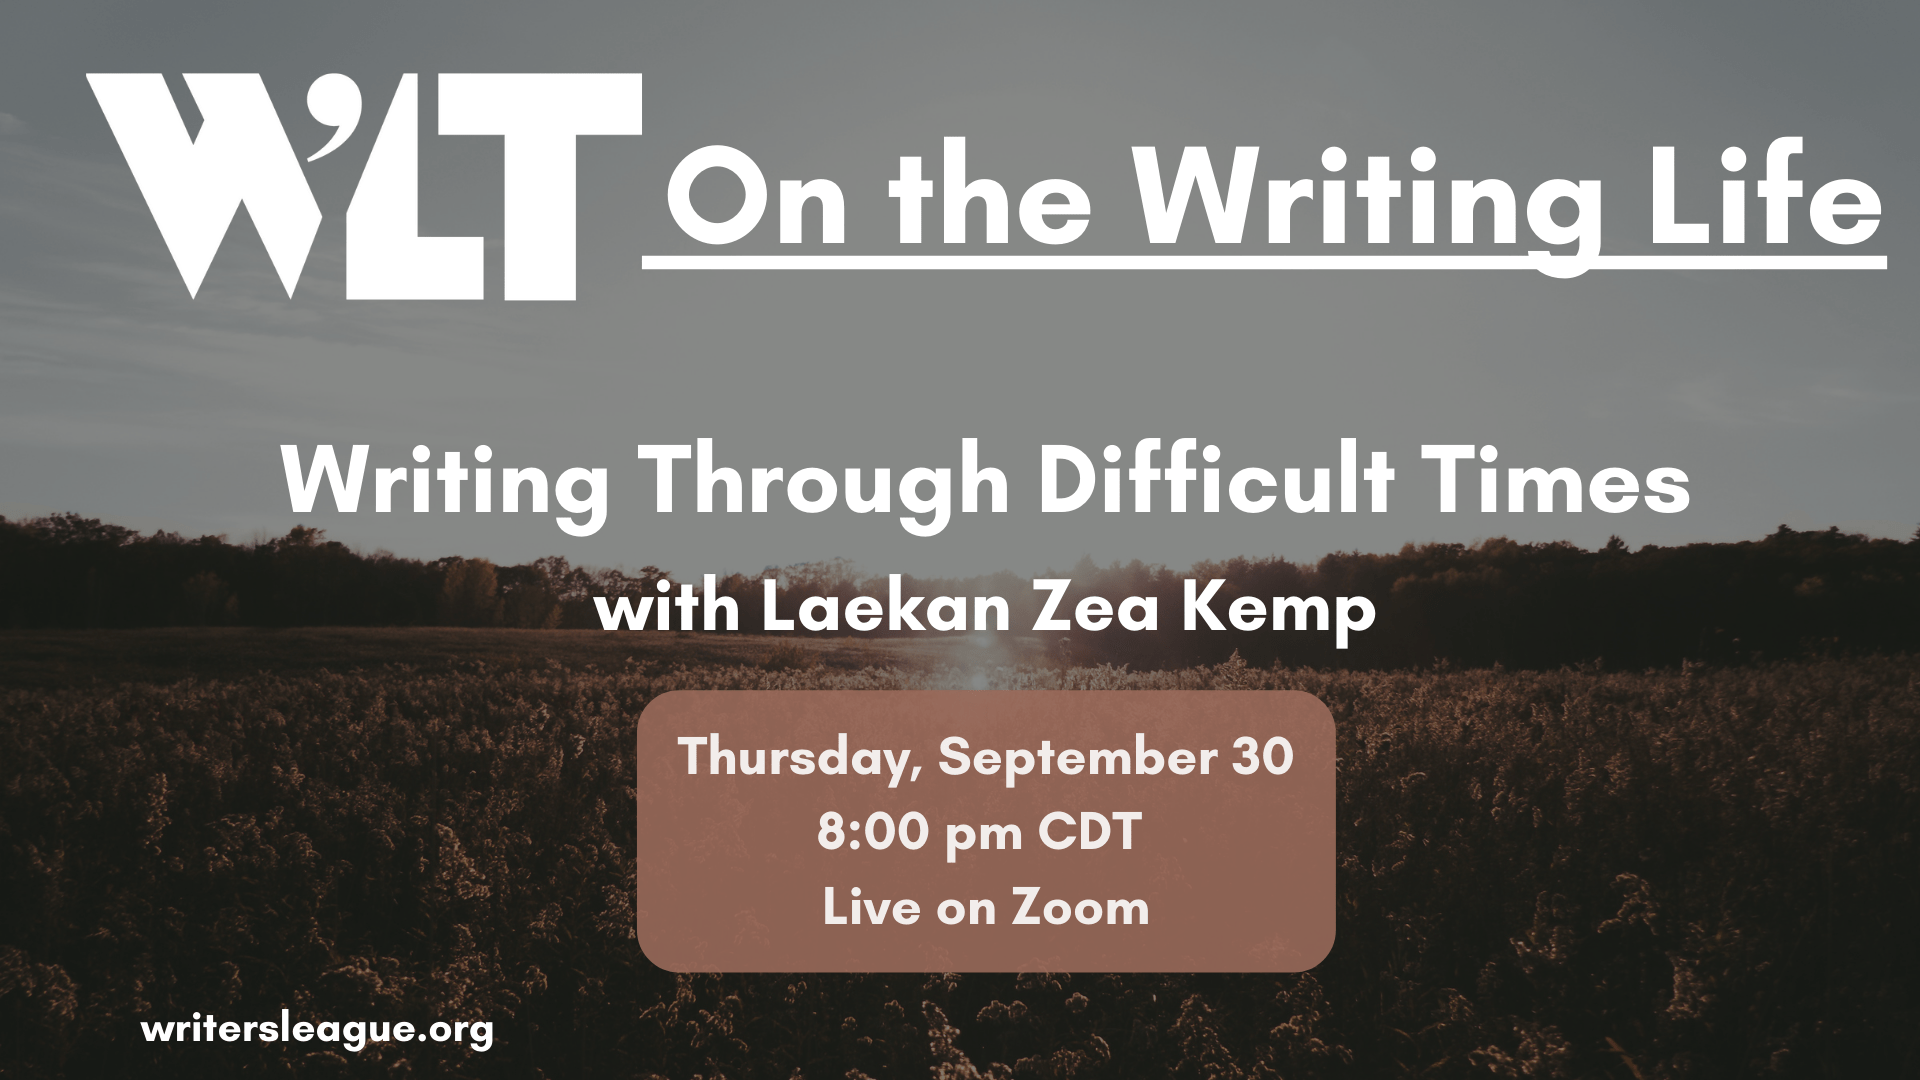 WLT On the Writing Life Writing Through Difficult Times with Laekan Zea Kemp Thursday, September 30 8:00 PM CDT live on Zoom